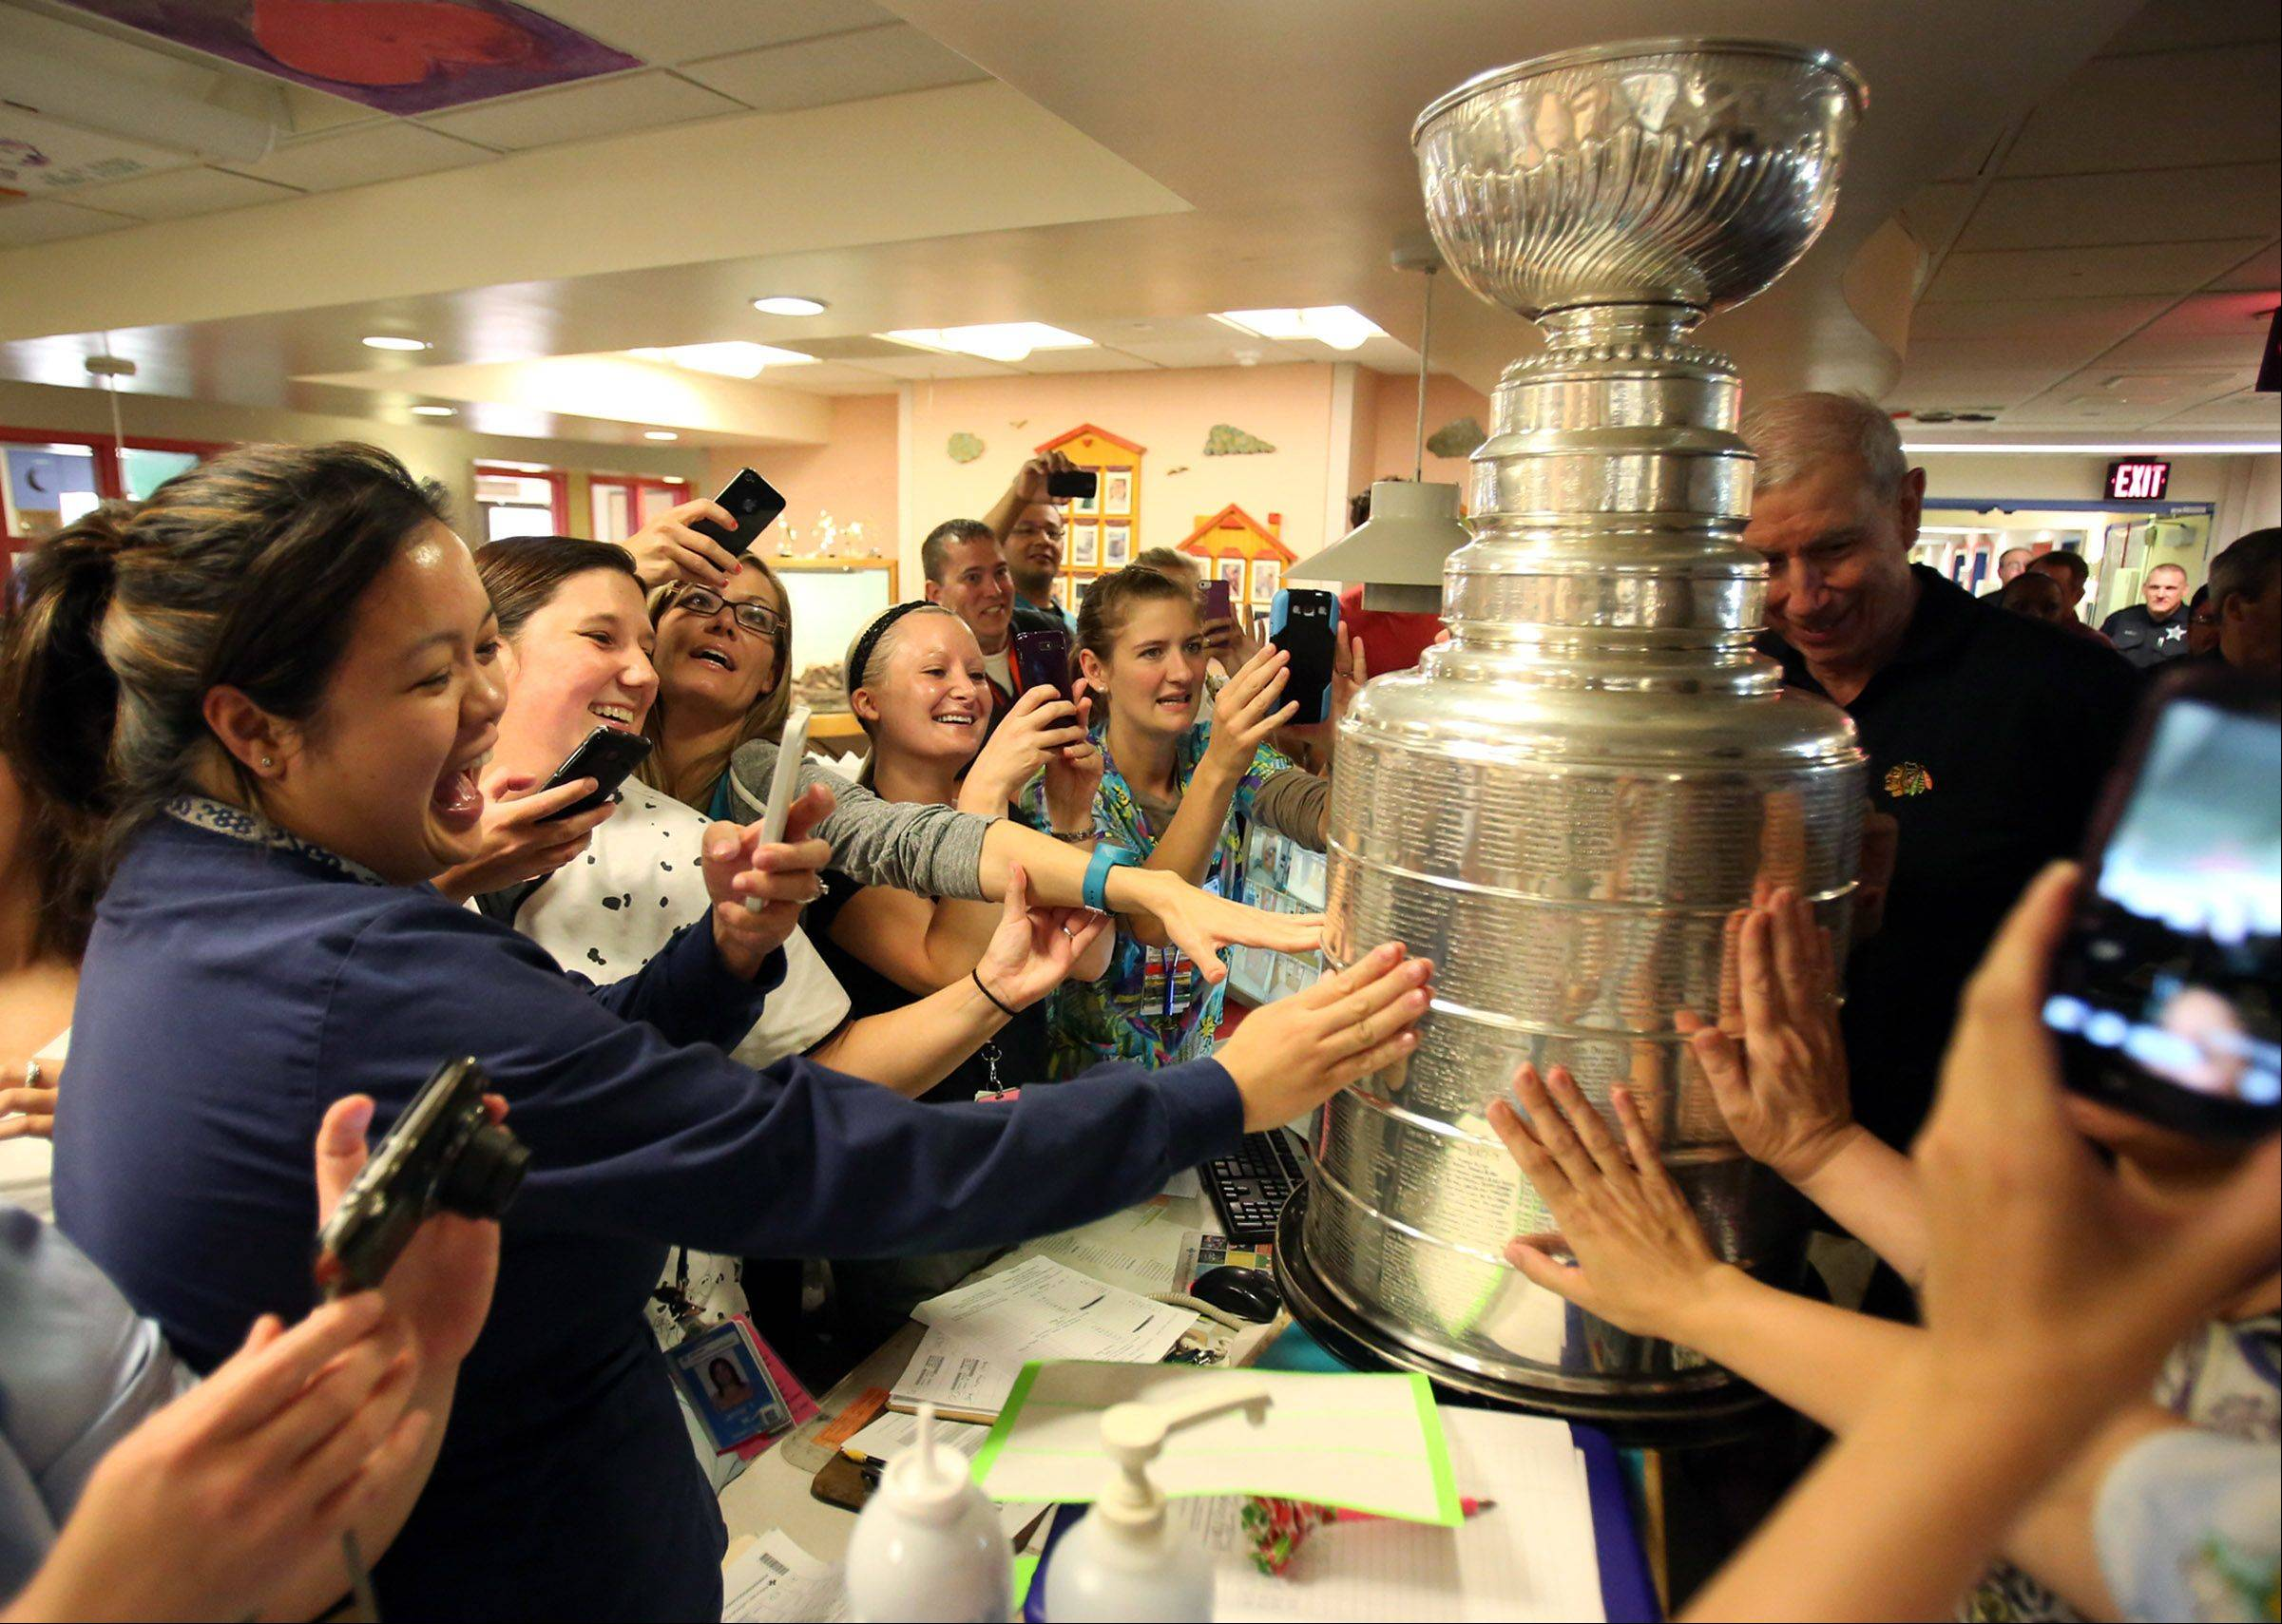 A dozen pediatric nurses took smartphone photos of the Stanley Cup as John McDonough, president and CEO of the Chicago Blackhawks, placed it on the counter of their workstation Saturday at Advocate Children's Hospital in Park Ridge.